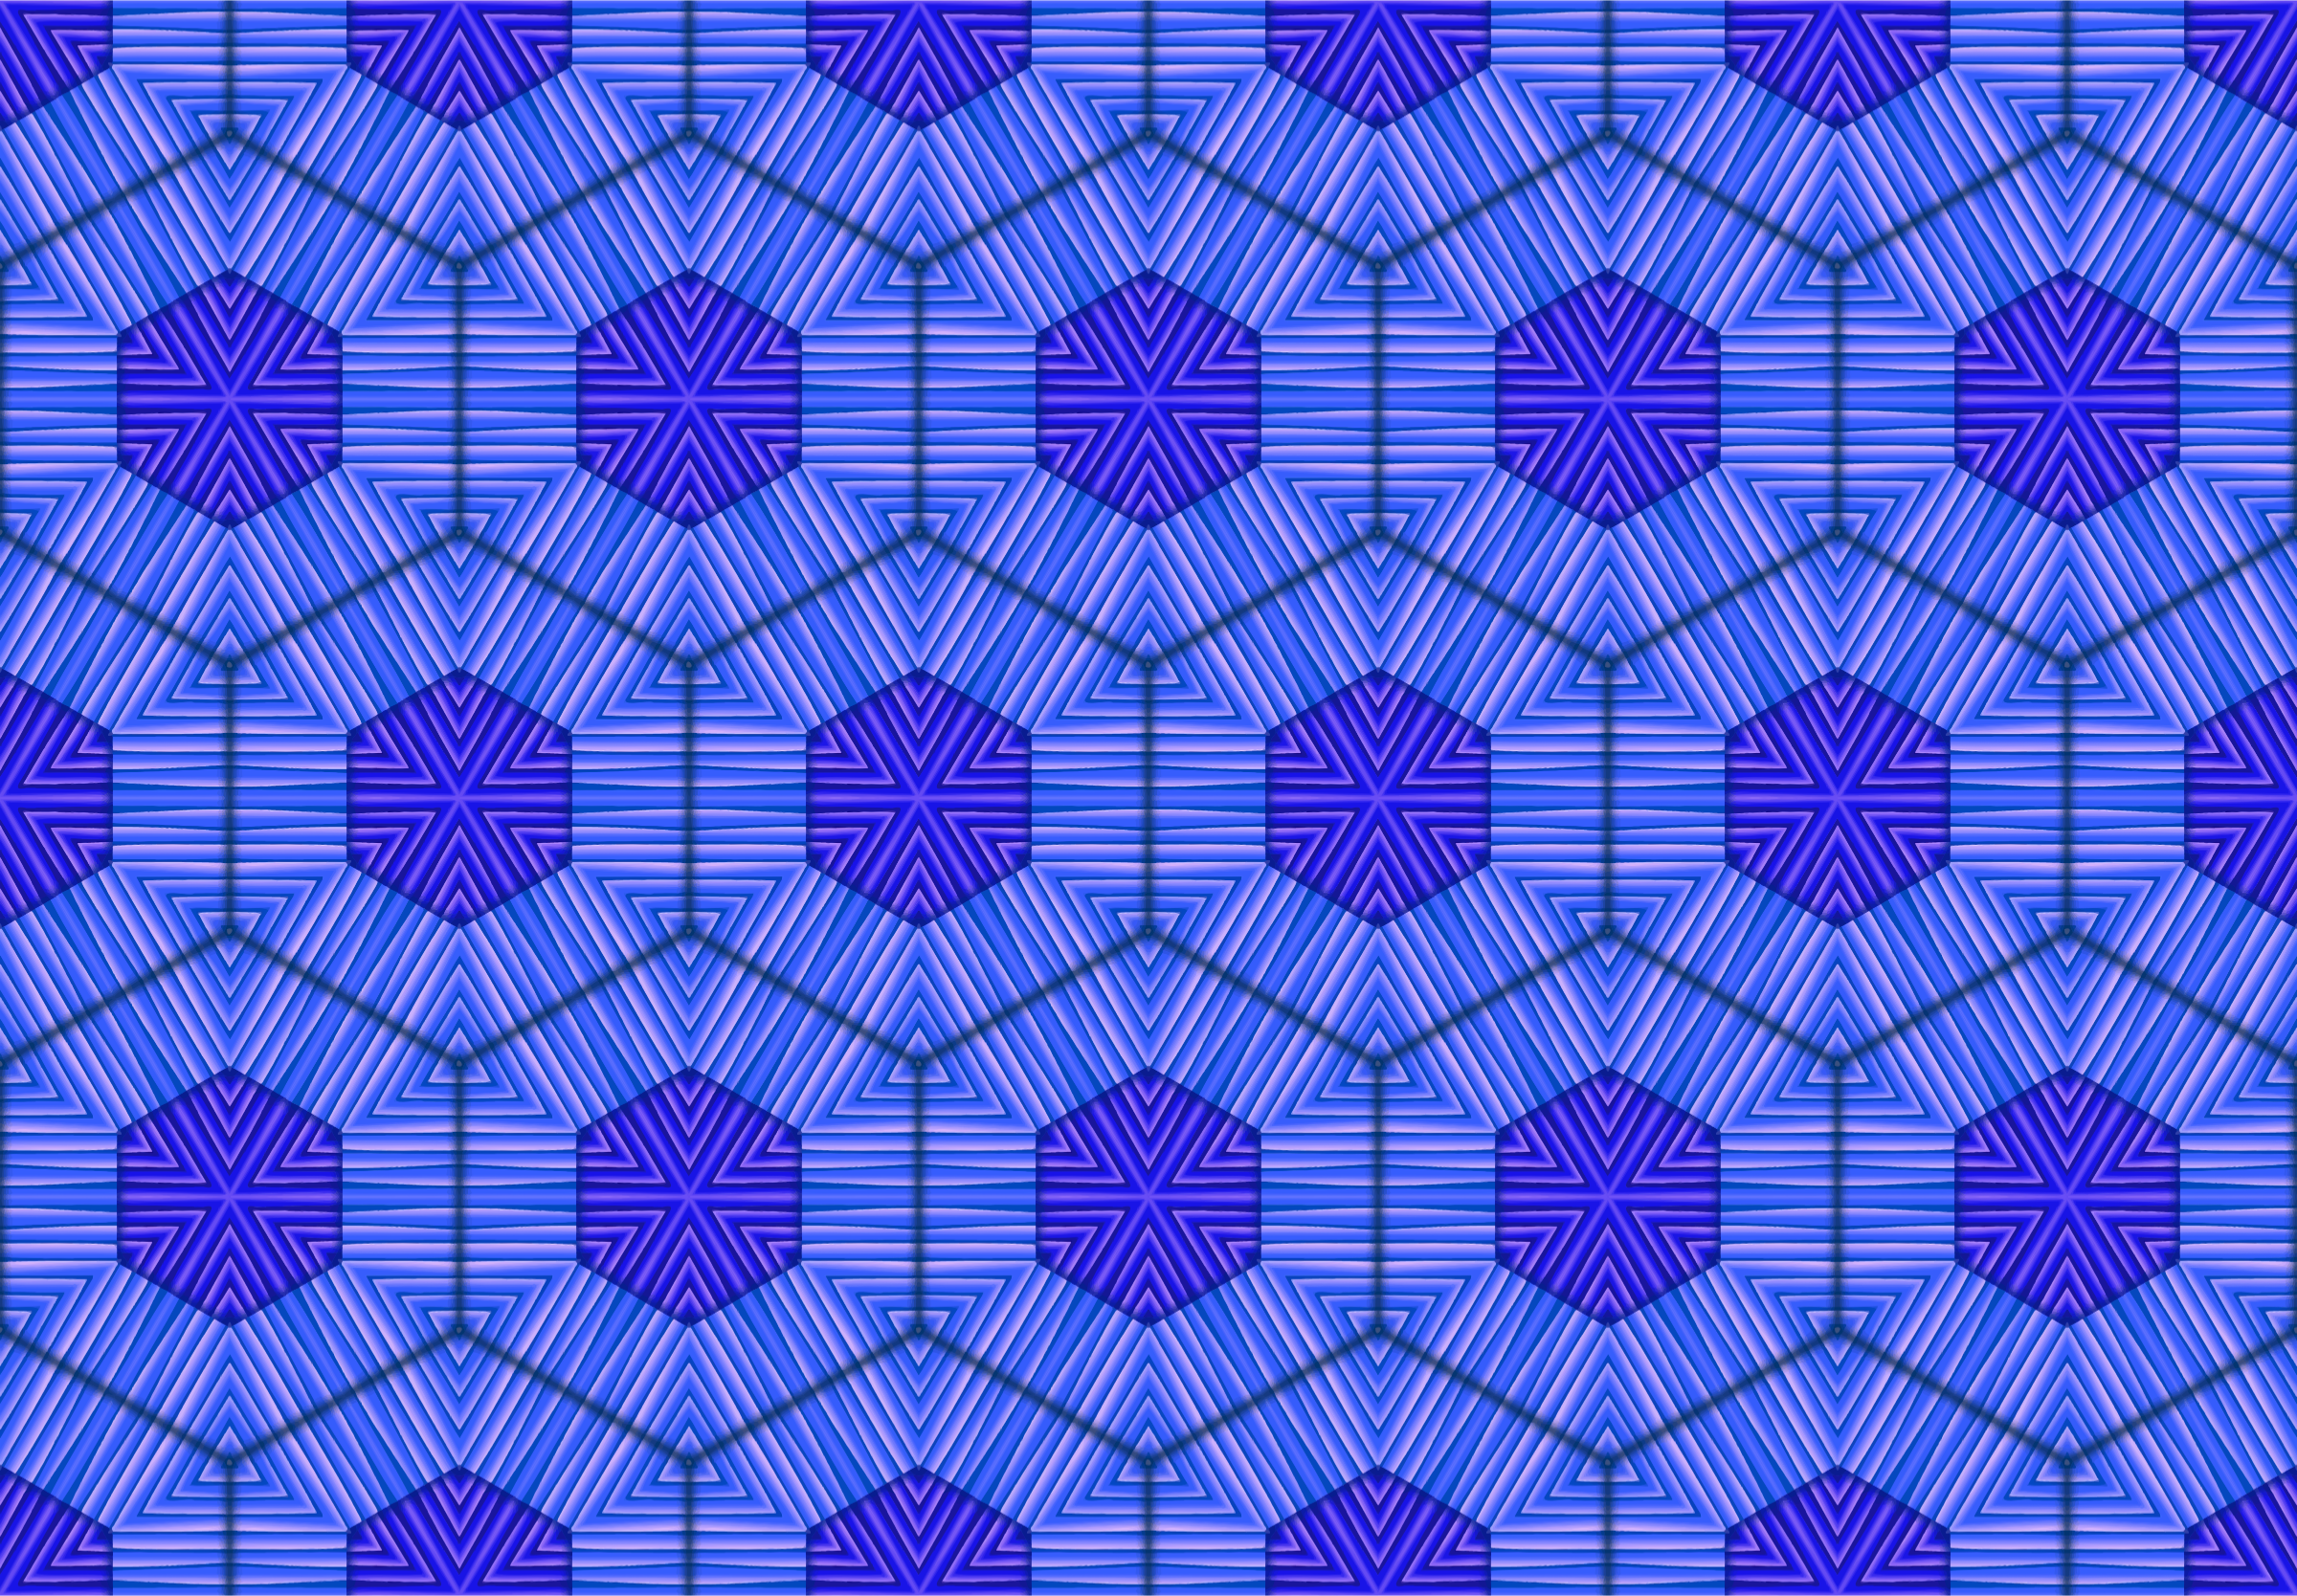 Background pattern 246 (colour 3) by Firkin